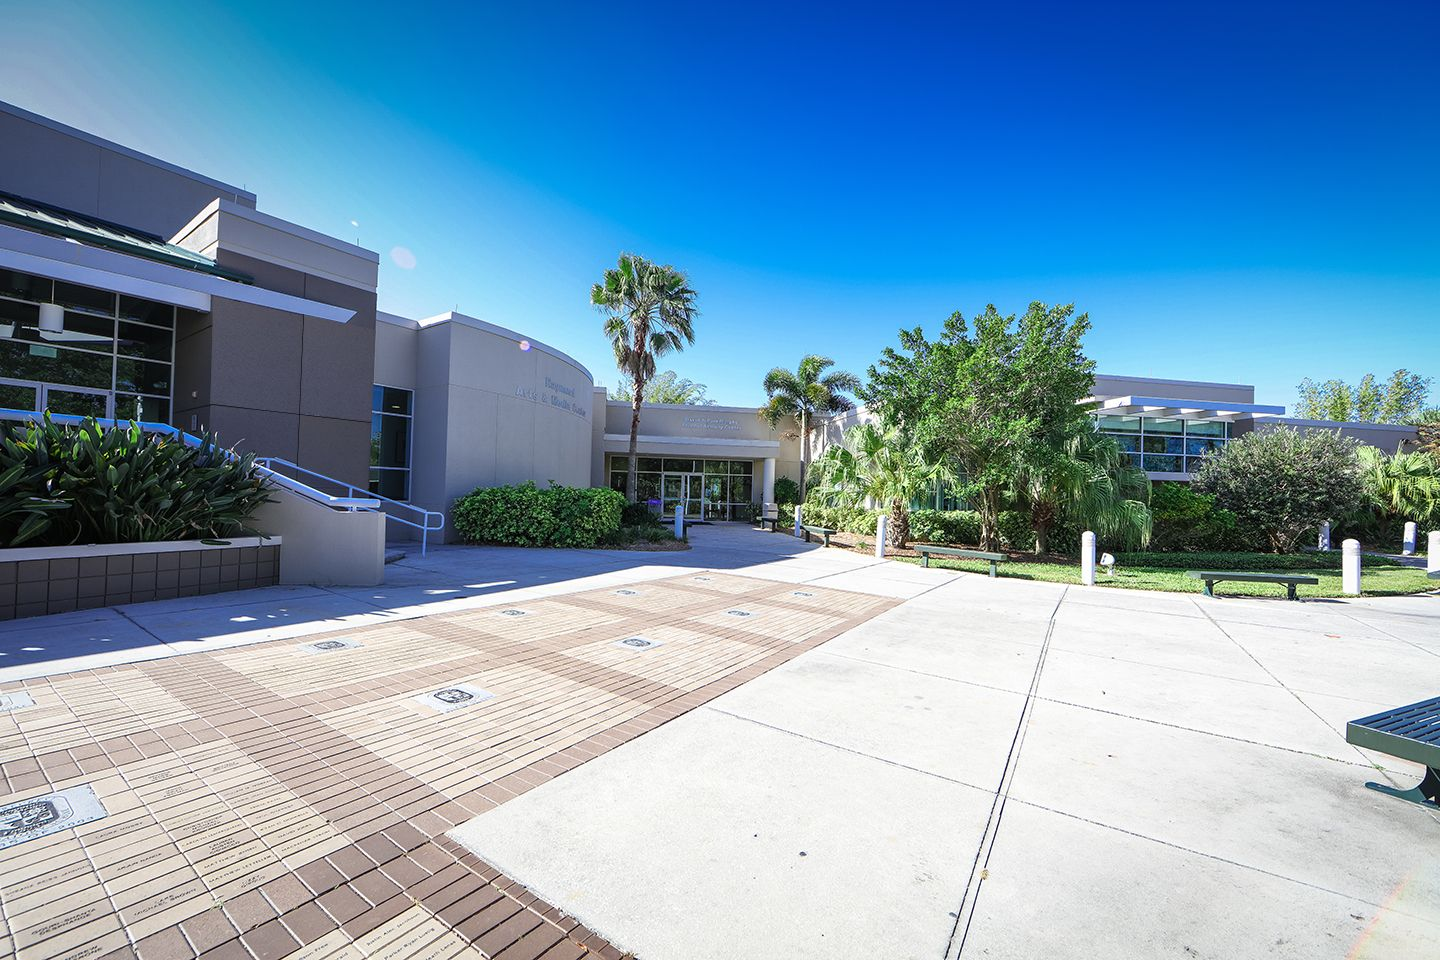 The Raymund Arts and Media Center houses the Carleen Vinal Haskell Library, our Makerspace and the Pam and David Murphy Student Activity Center; and is adjacent to the Janet Root Theatre